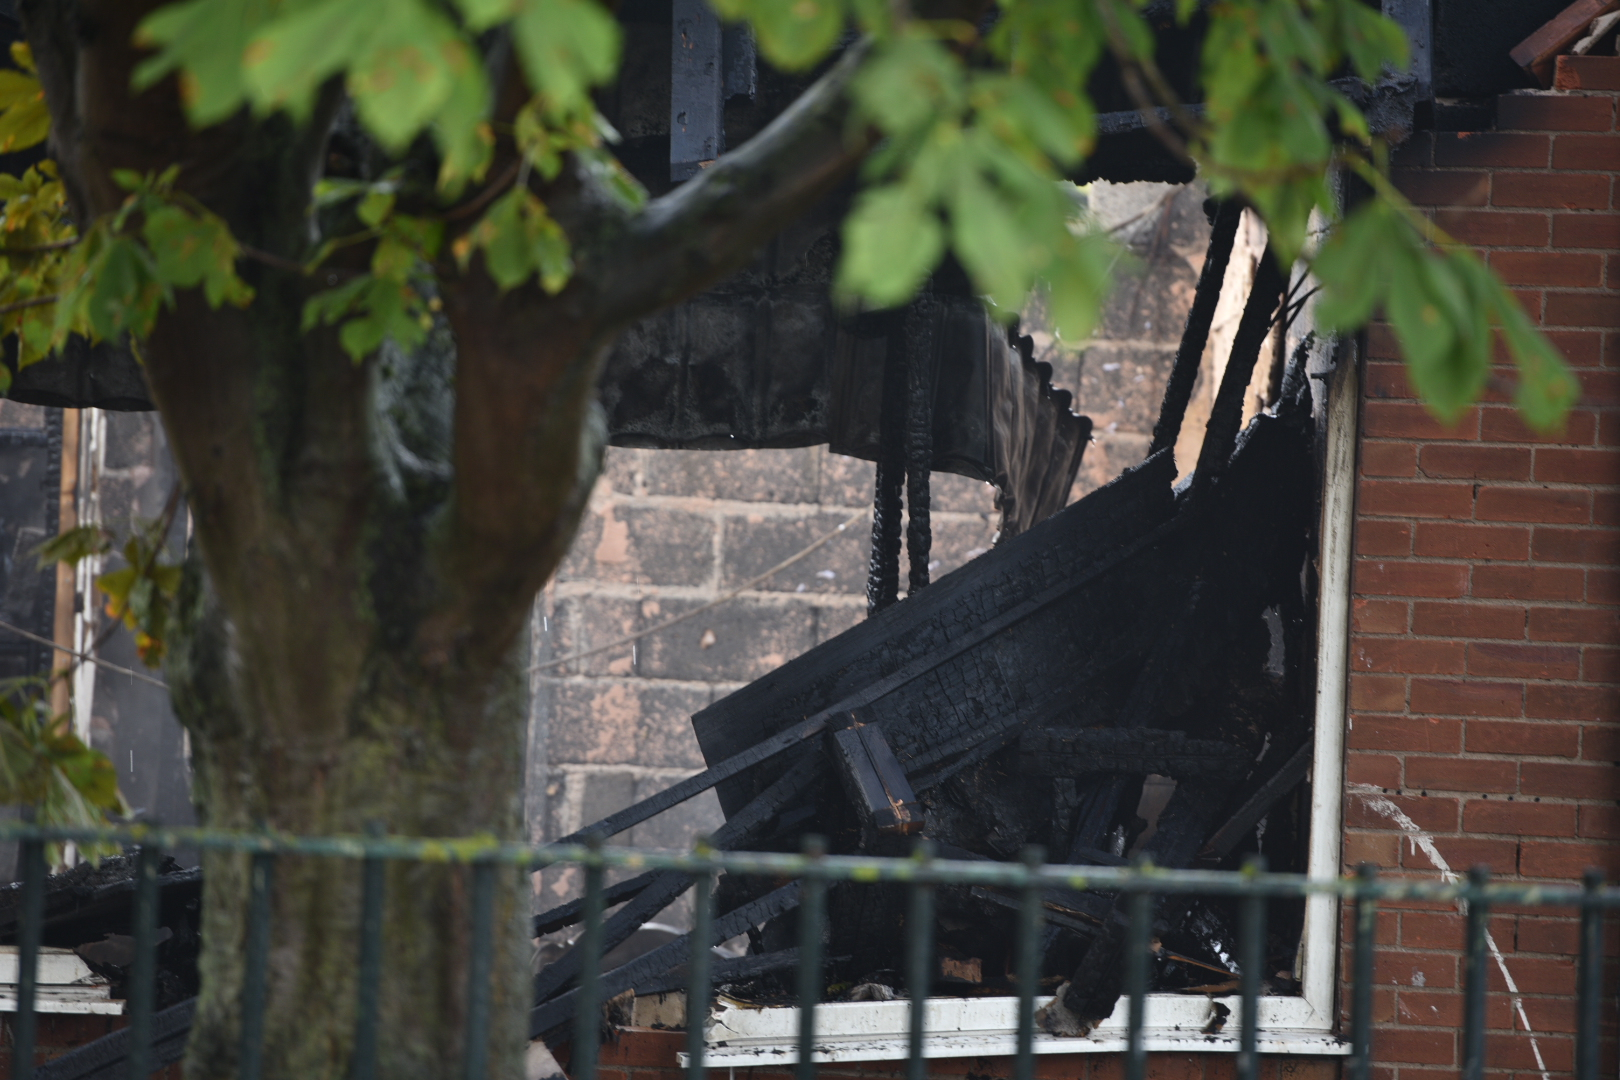 St Giles youth centre fire SS